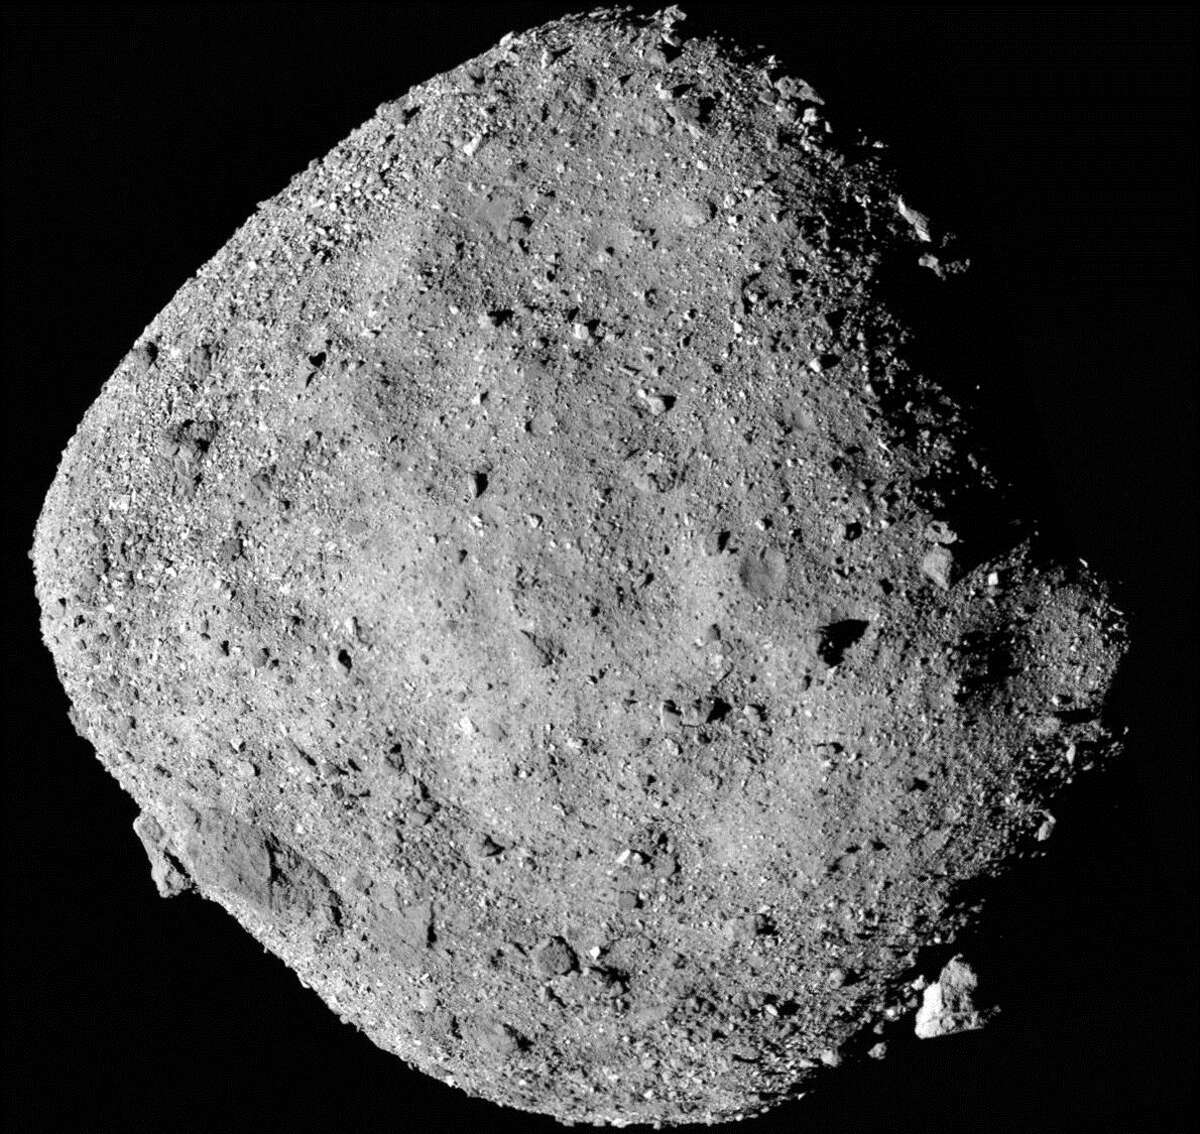 FILE - This mosaic image composed of 12 PolyCam images collected on Dec. 2, 2018, and provided by NASA shows the asteroid Bennu. NASA's first look at a tiny asteroid shows the space rock is more moist and studded with boulders than originally thought. Scientists on Monday, Dec. 10, released the first morsels of data collected since their spacecraft Osiris-Rex hooked up last week with the asteroid Bennu, which is only about three blocks wide and weighs about 80 million tons (73 million metric tons). Bennu regularly crosses Earth's orbit and will come perilously close to Earth in about 150 years. (NASA/Goddard/University of Arizona via AP)